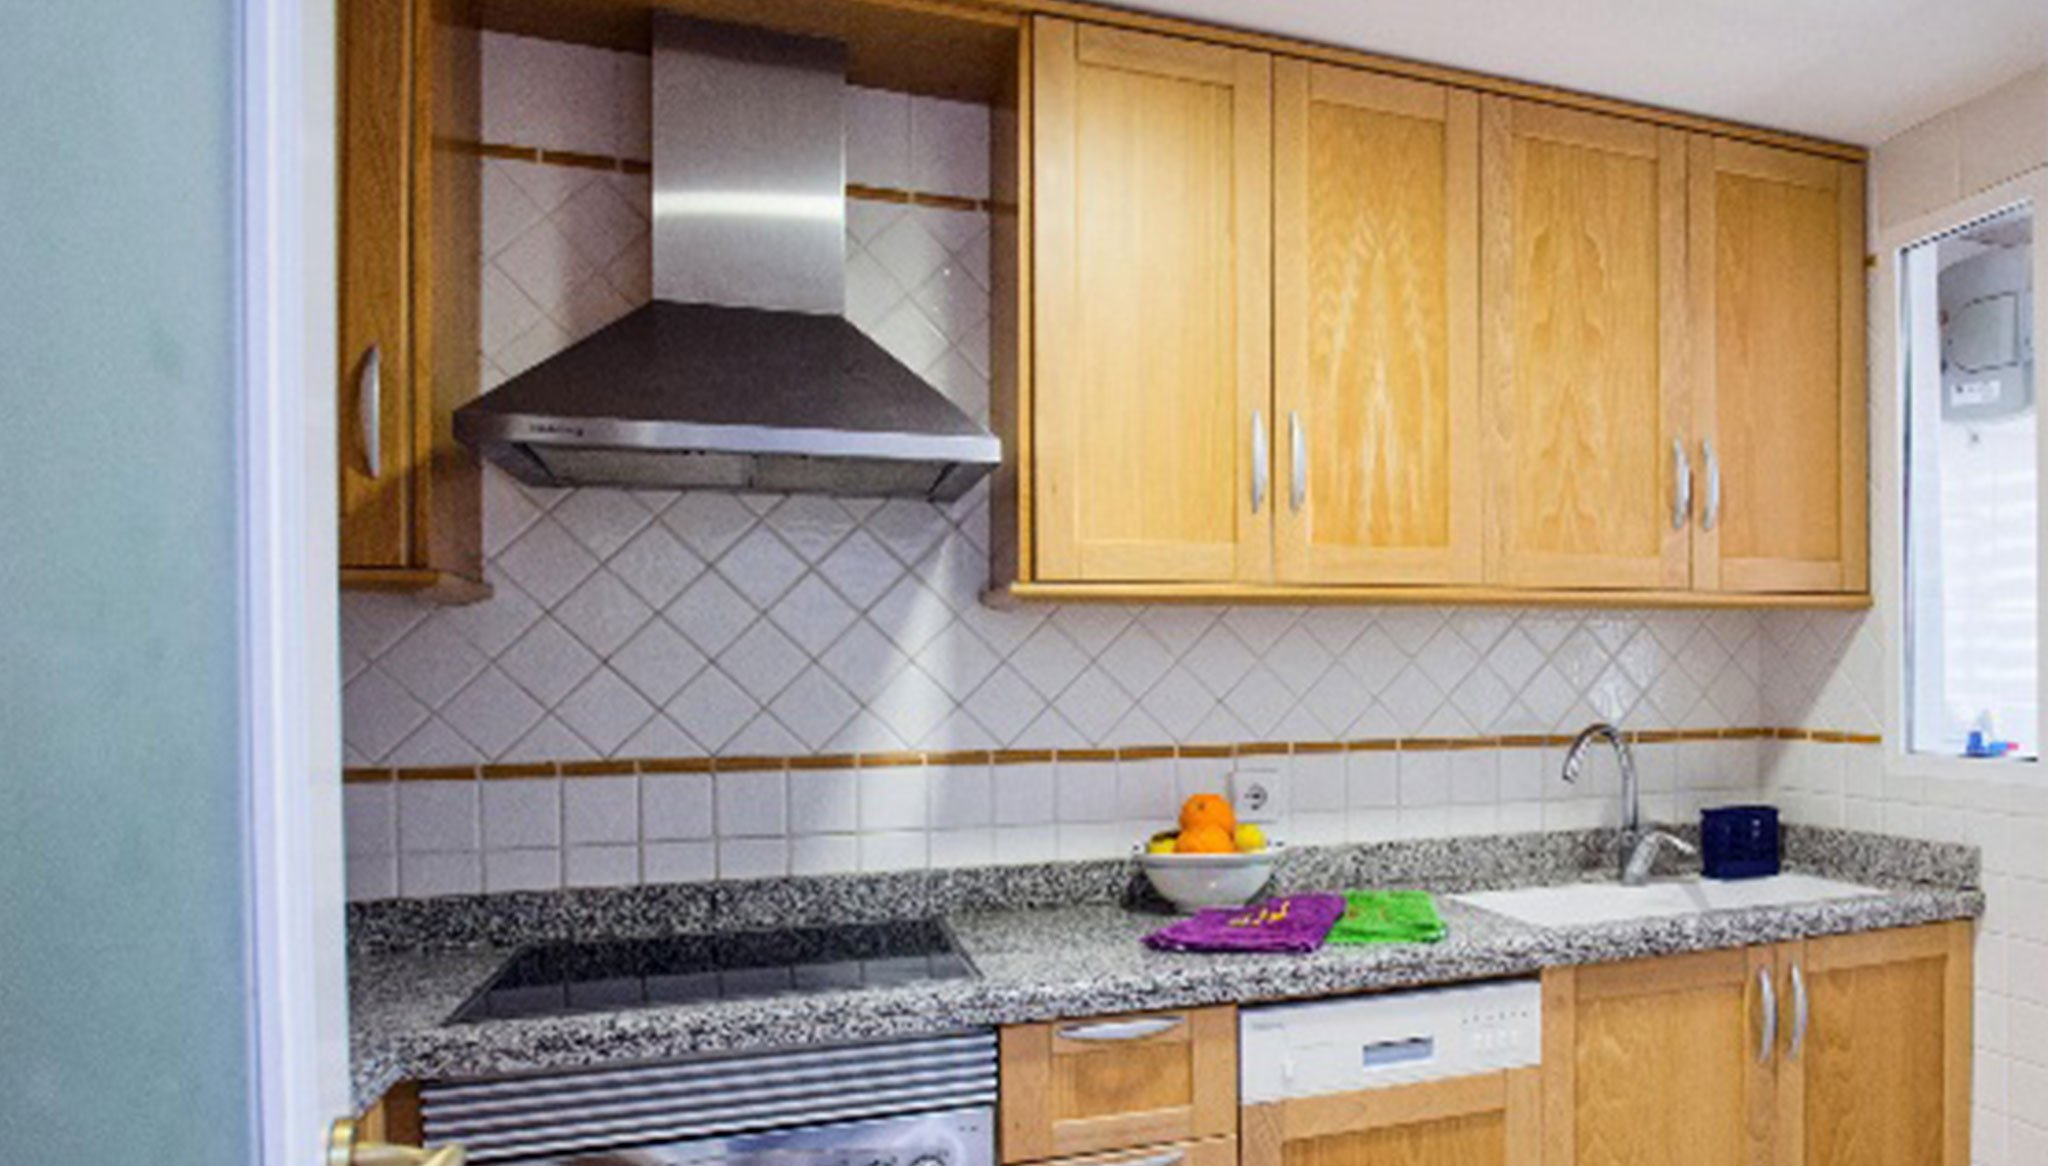 Kitchen of an apartment on the beach for rent in Dénia - Deniasol